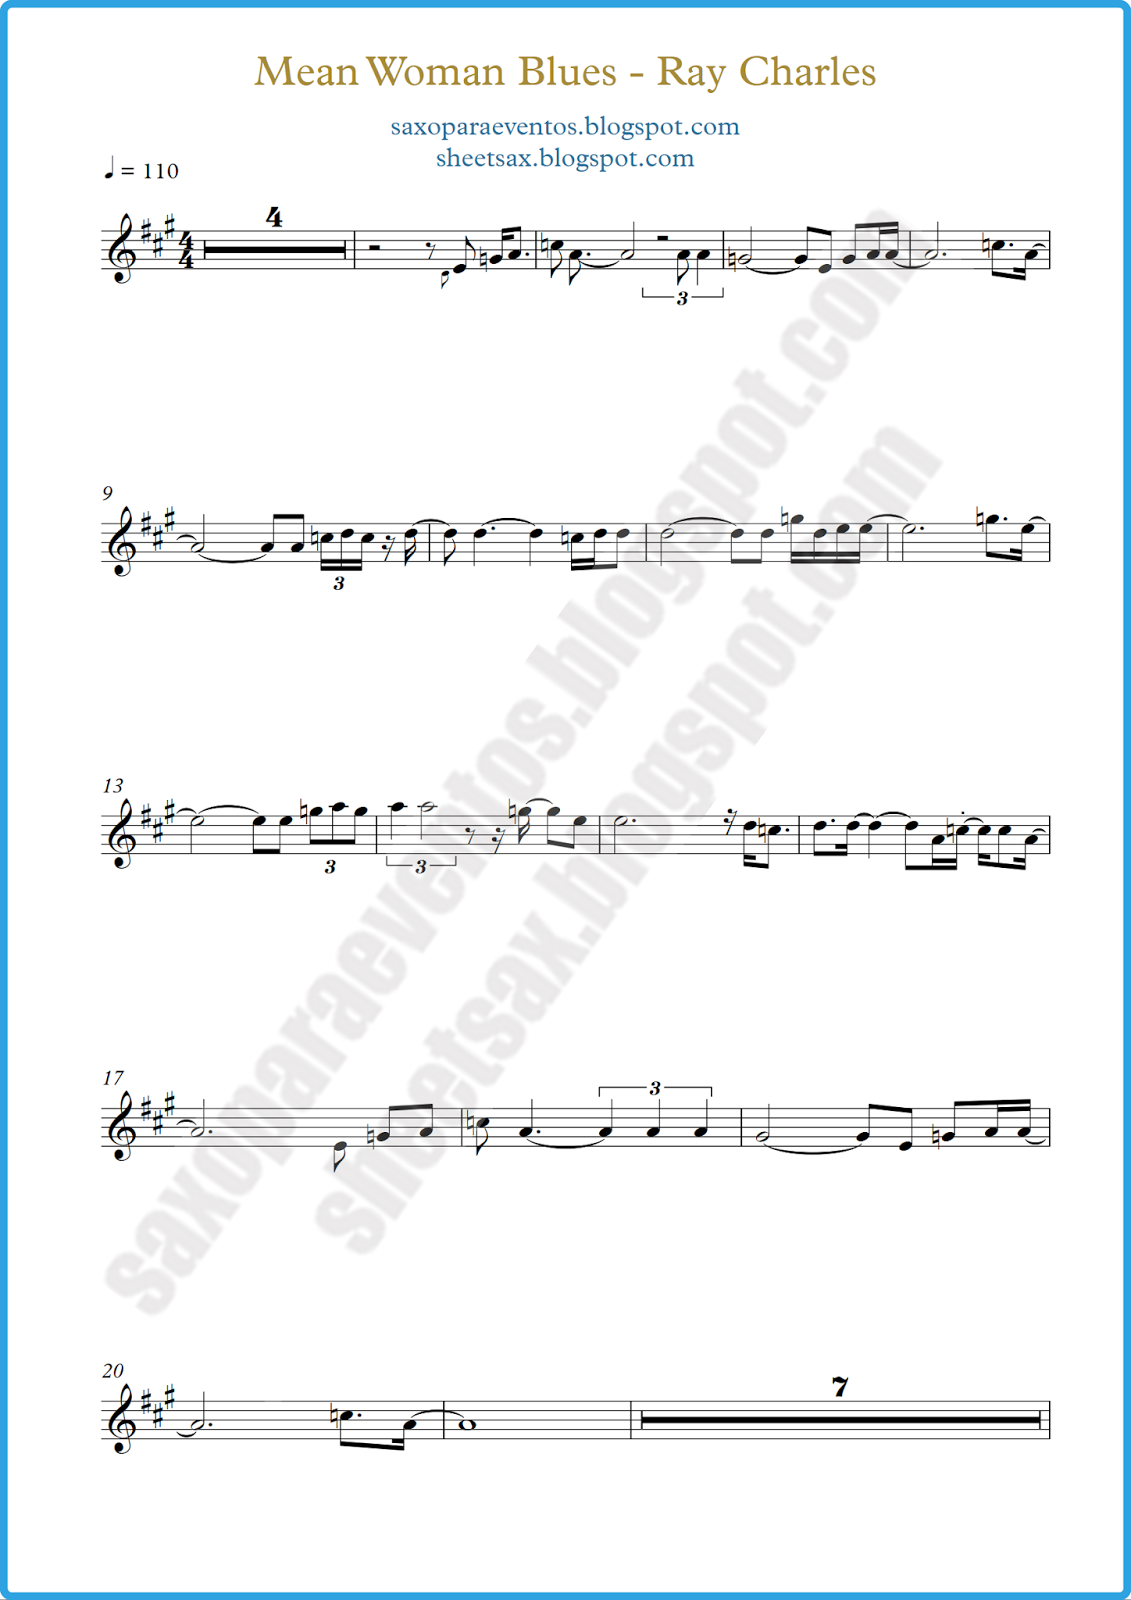 Mean Woman Blues by Ray Charles (Free sheet music) | Free